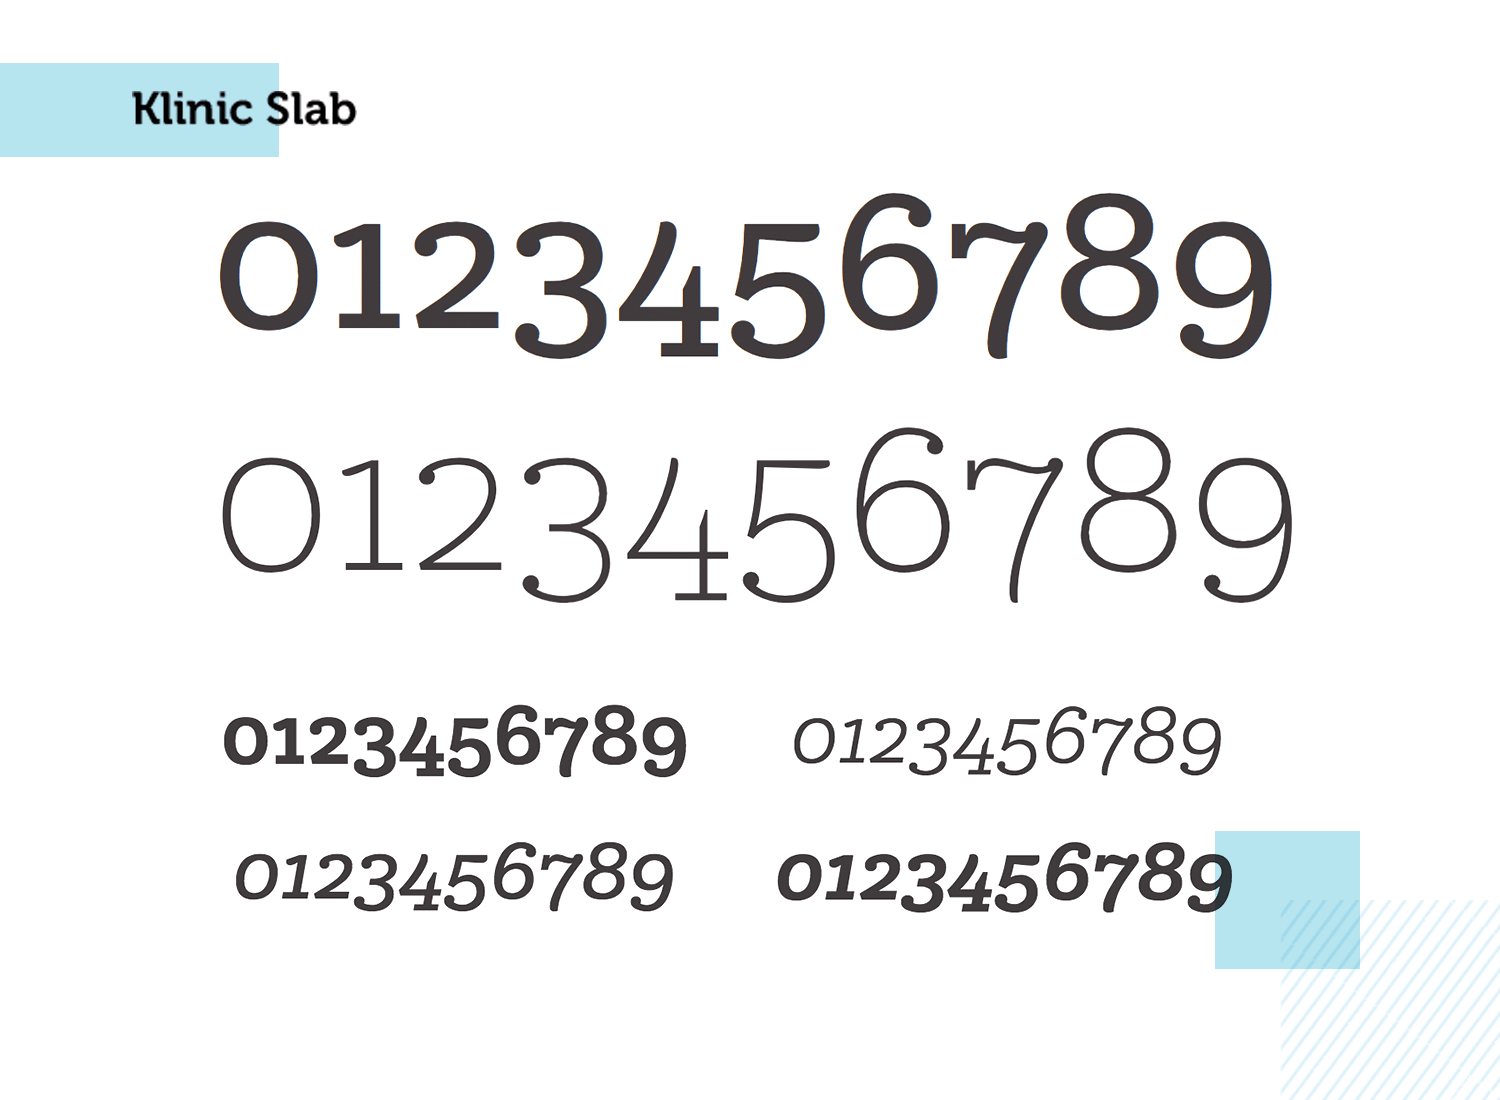 klinic slab as one of the best paid number typeface